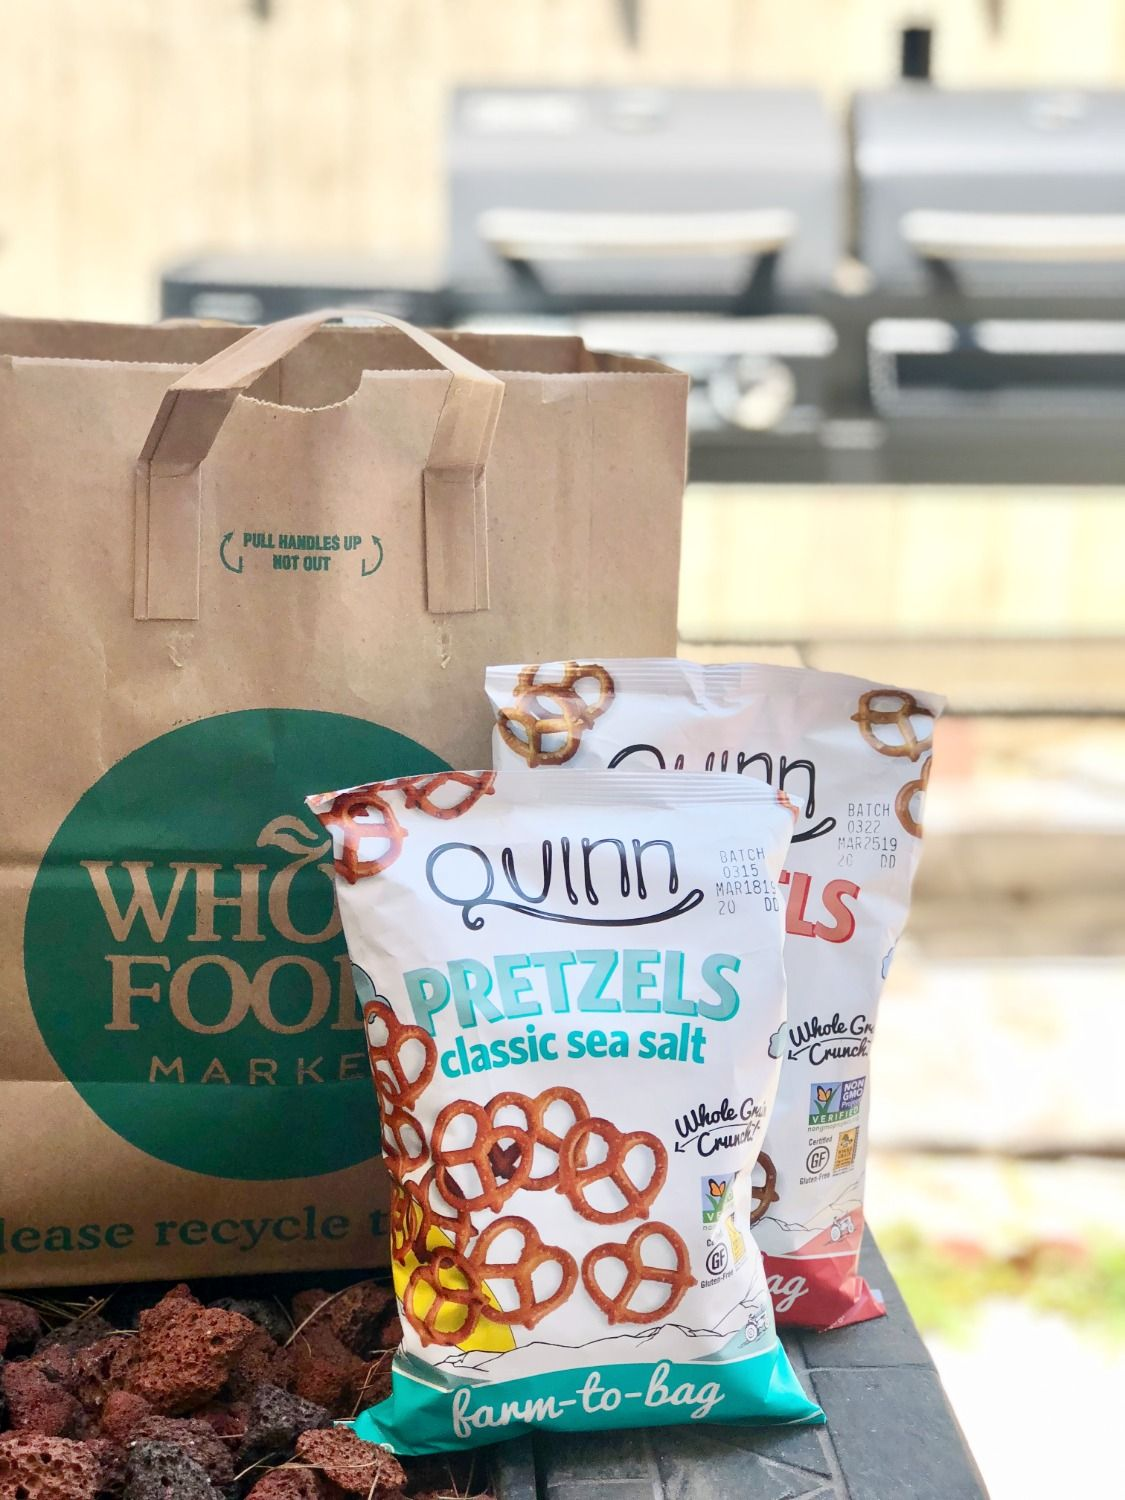 Quinn Pretzels now available at Whole Foods nationwide